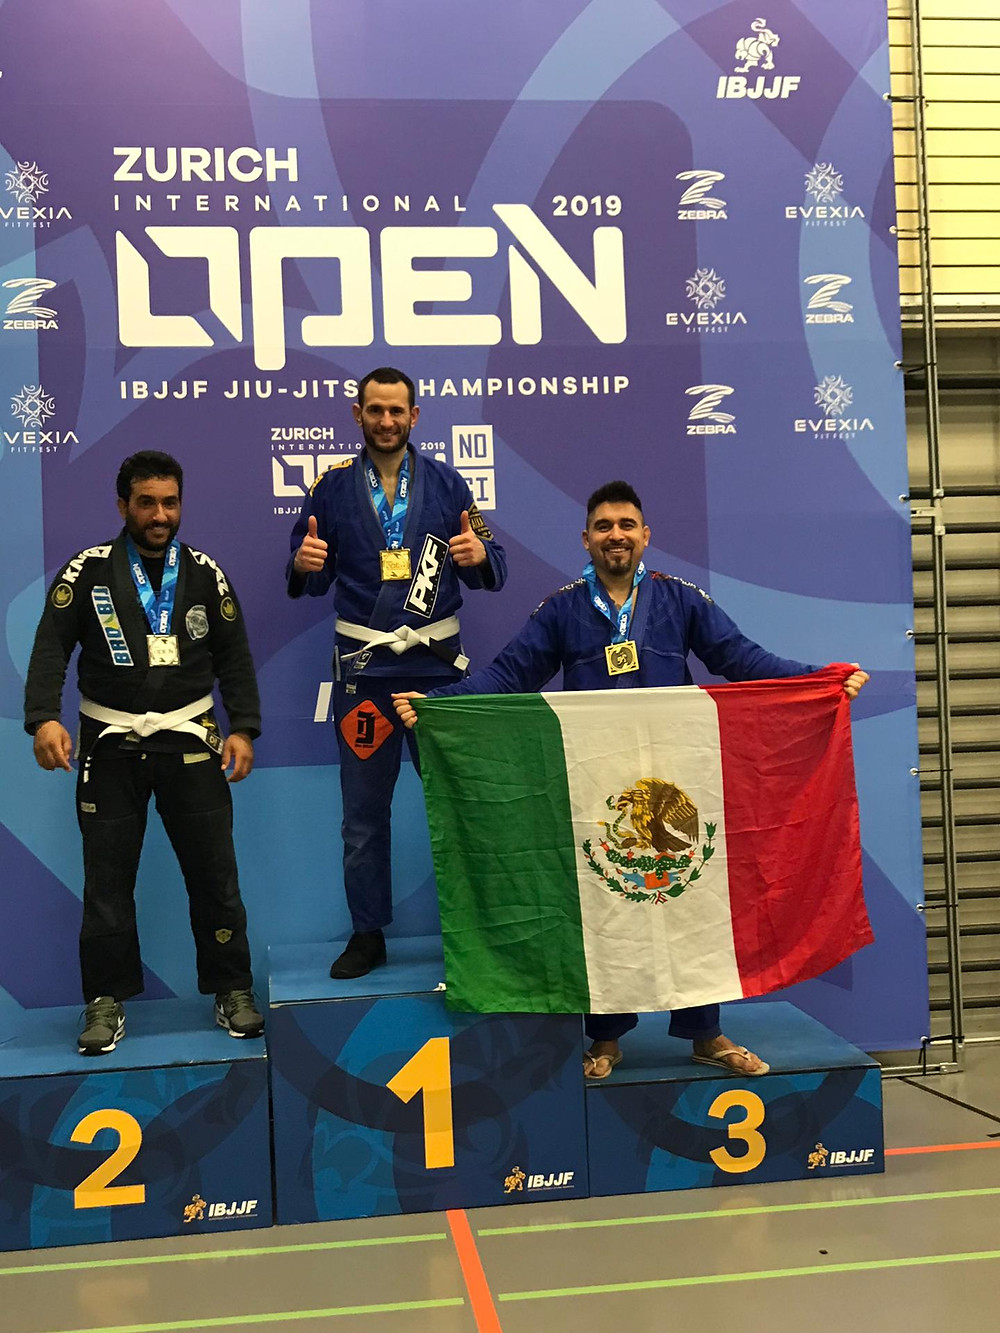 AZAHEL GONZALES - WINNING THE BRONZE MEDAL AT THE IBJJF ZURICH OPEN 2019